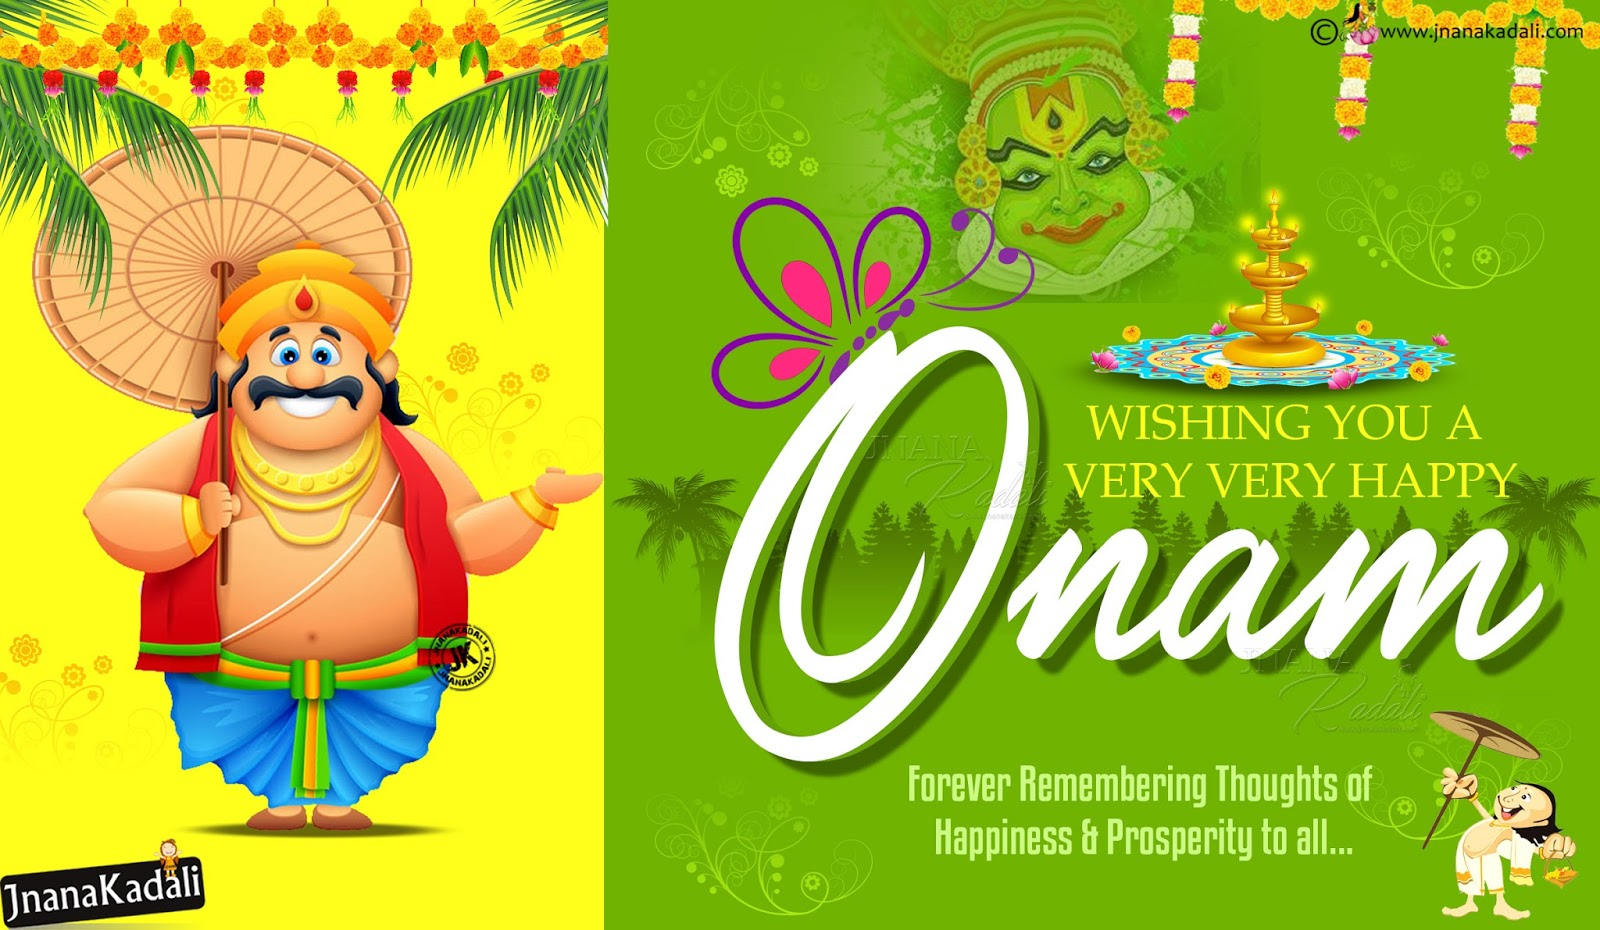 Happy Onam Greetings Hd Wallpapers In English Malayama Onam Quotes